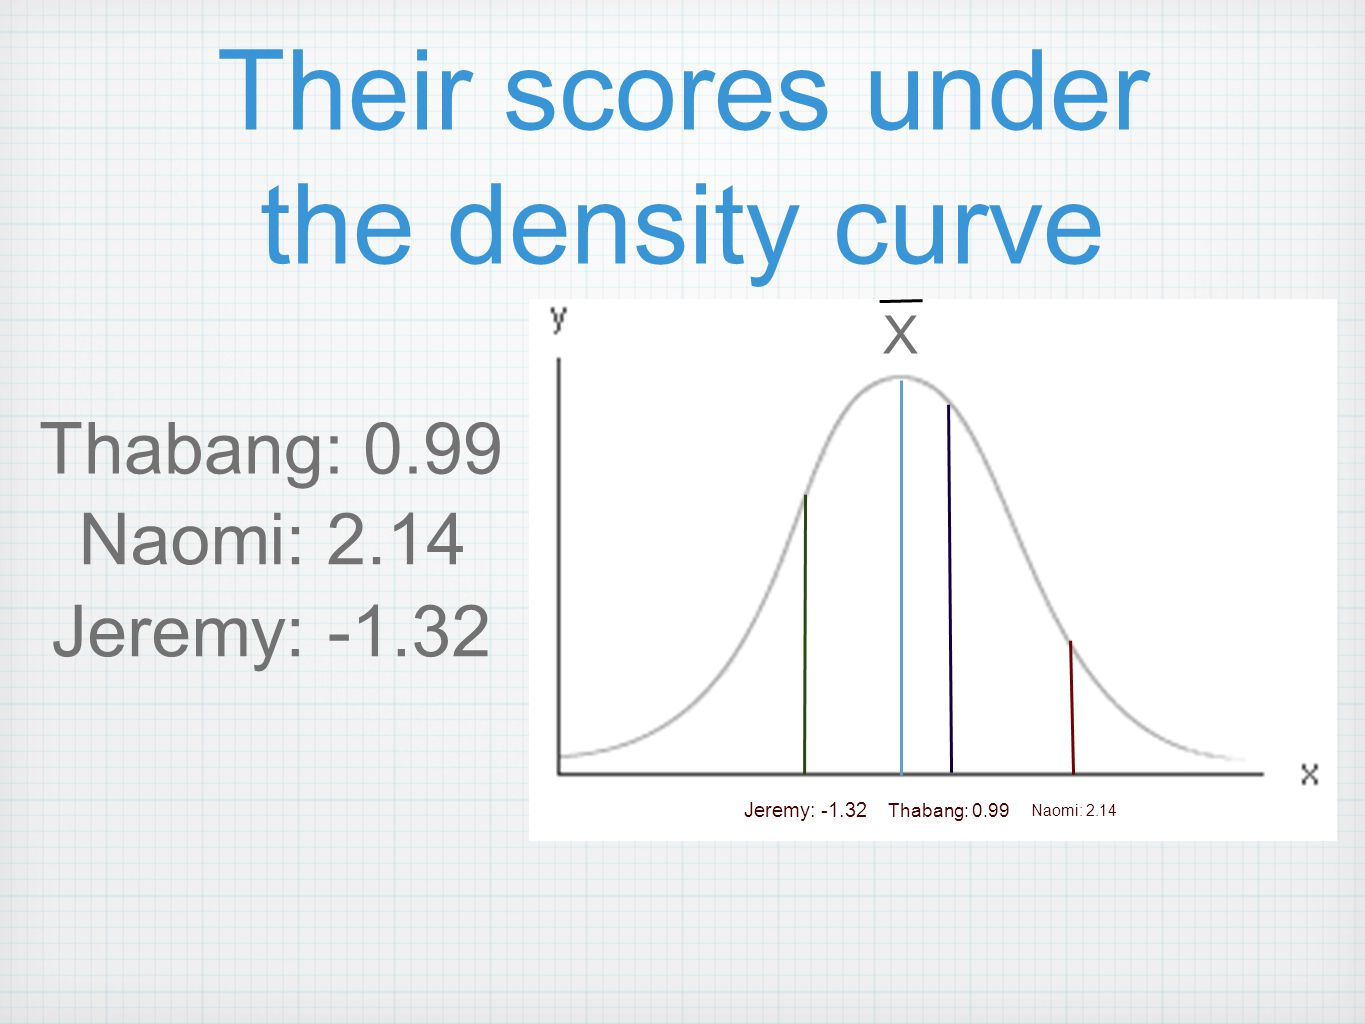 Their scores under the density curve